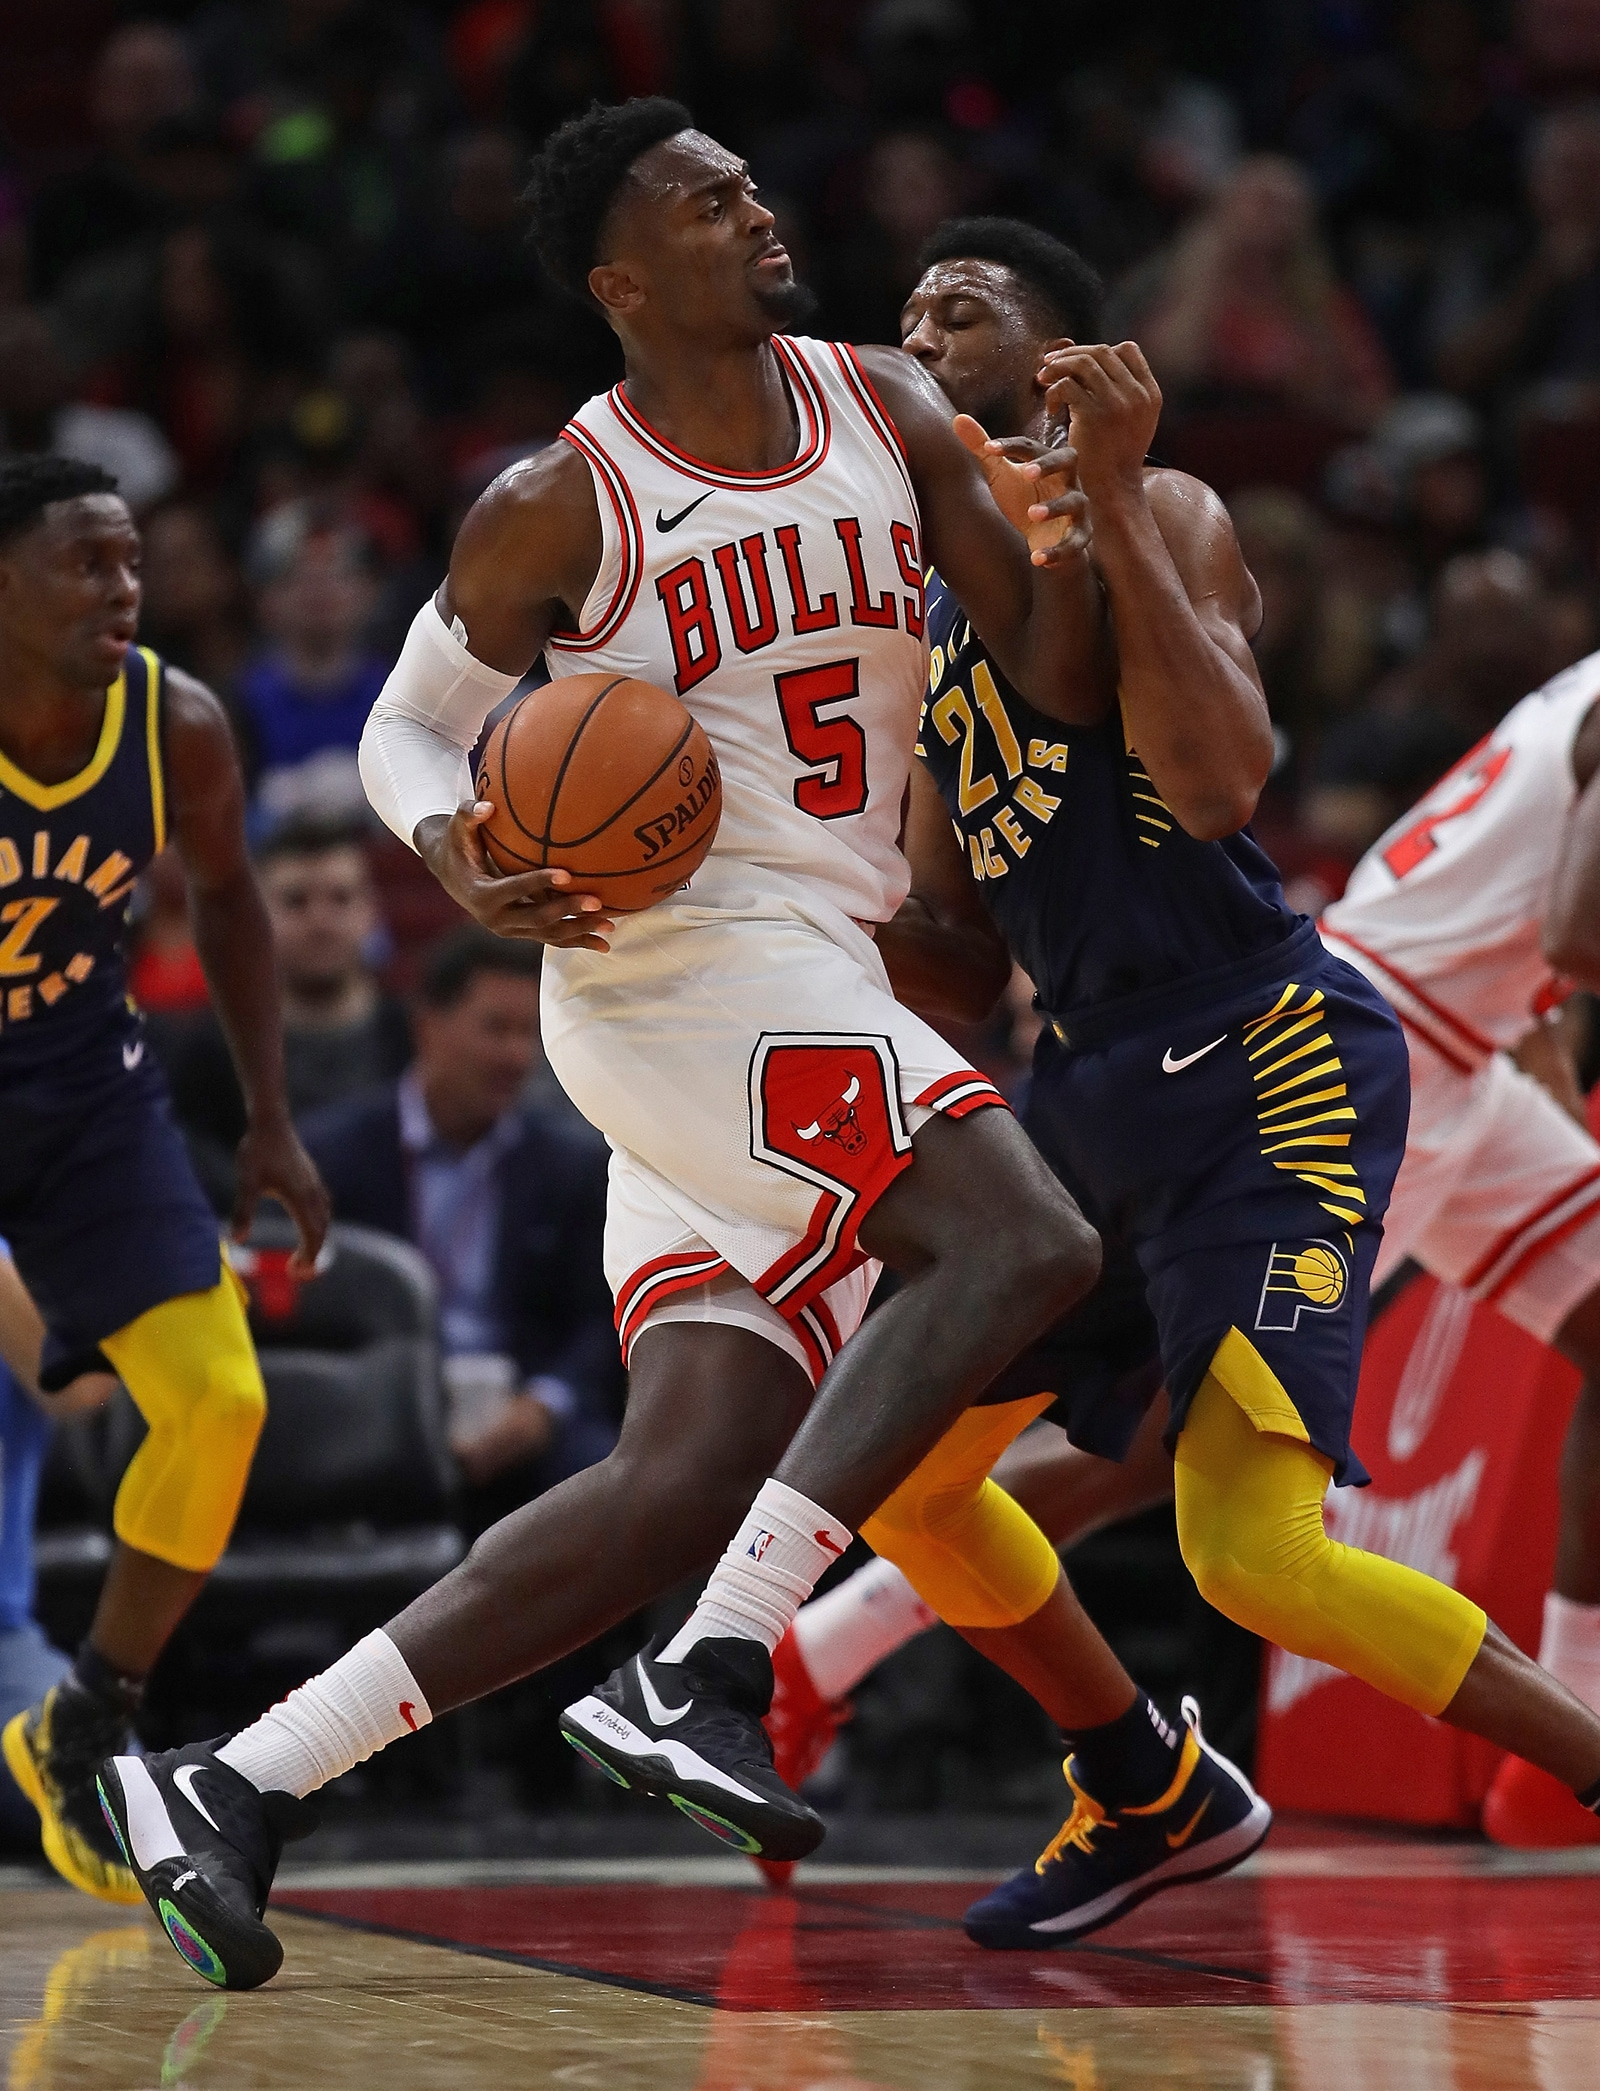 Bobby Portis powers his way through the Pacers defense